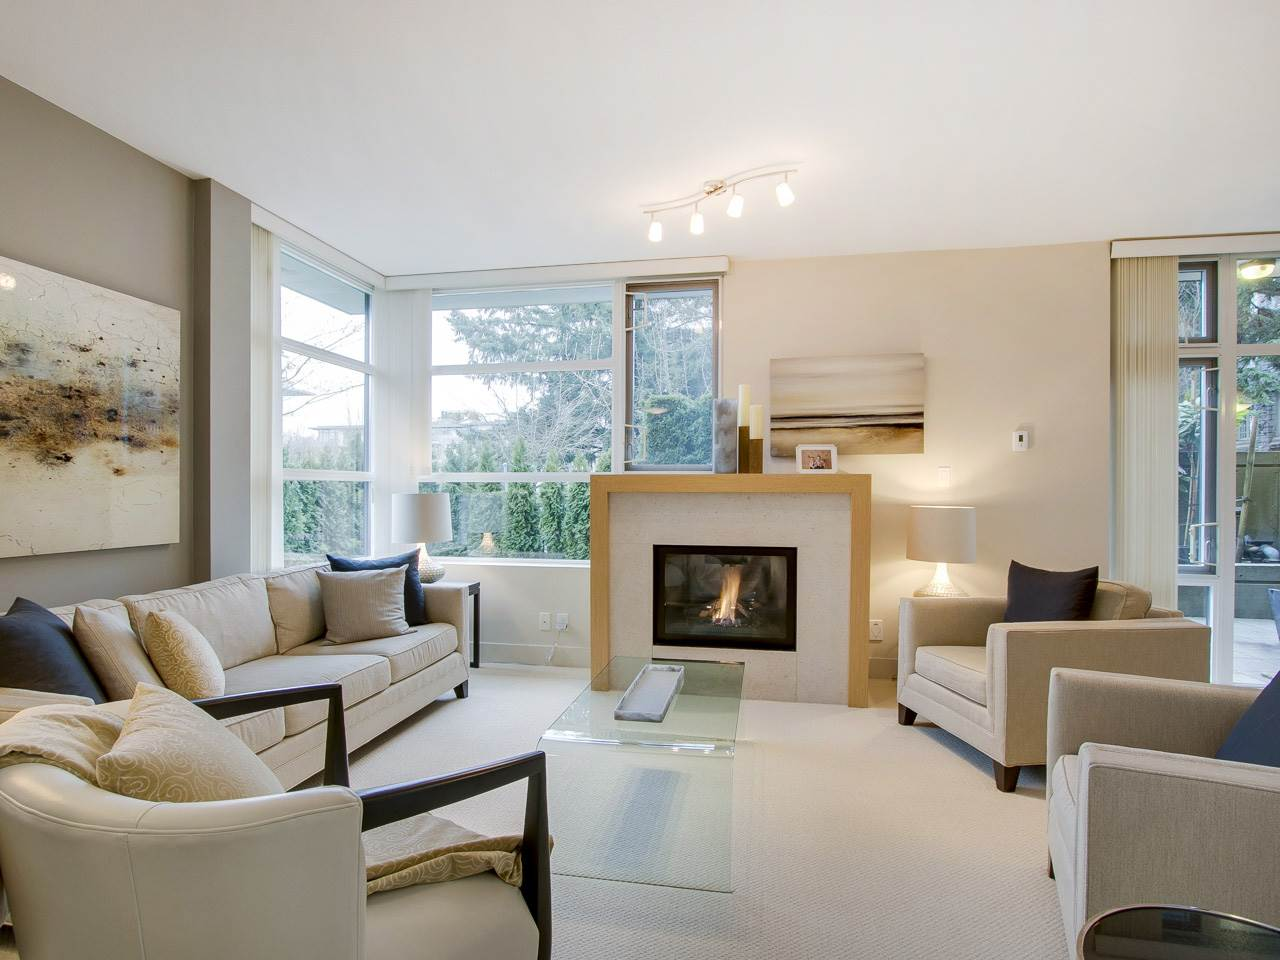 Photo 2: 113 6018 IONA DRIVE in Vancouver: University VW Townhouse for sale (Vancouver West)  : MLS® # R2146501